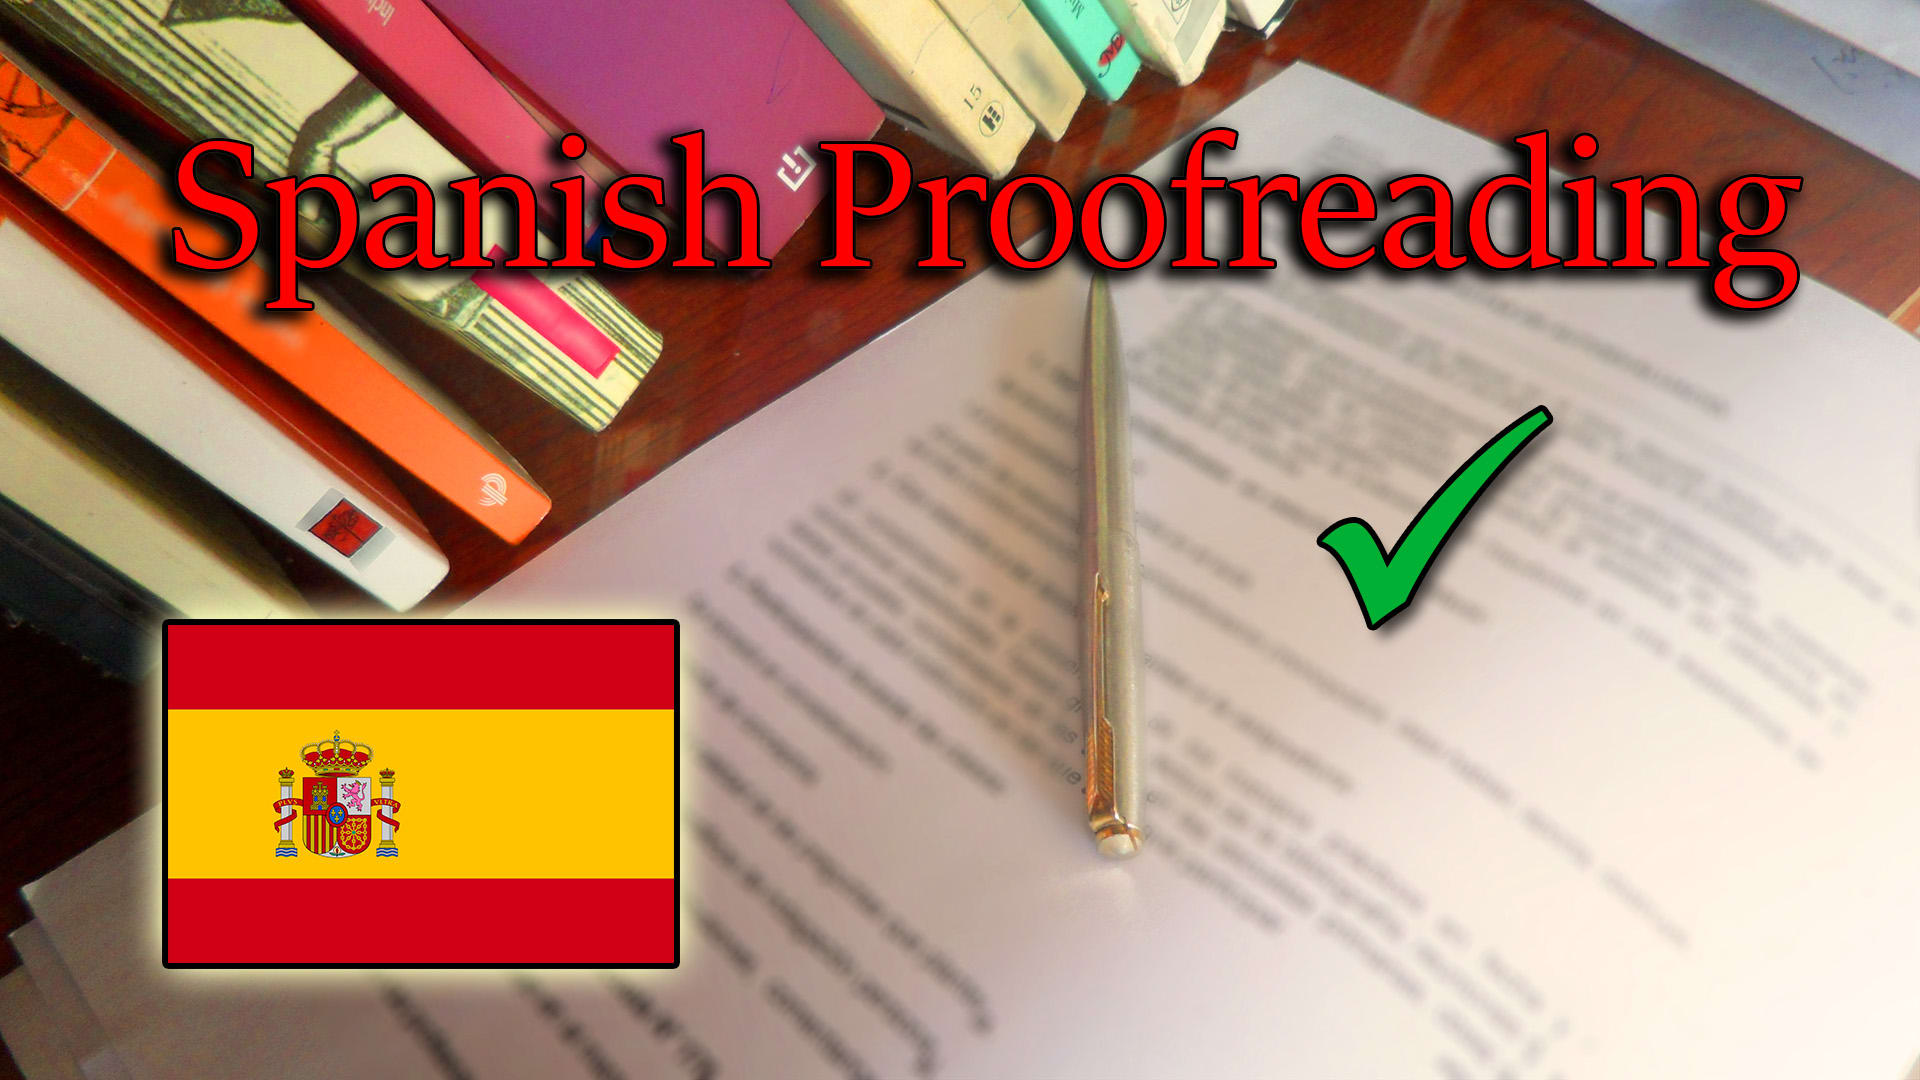 proofread 1500 spanish words in 24 hours by marioge proofread 1500 spanish words in 24 hours